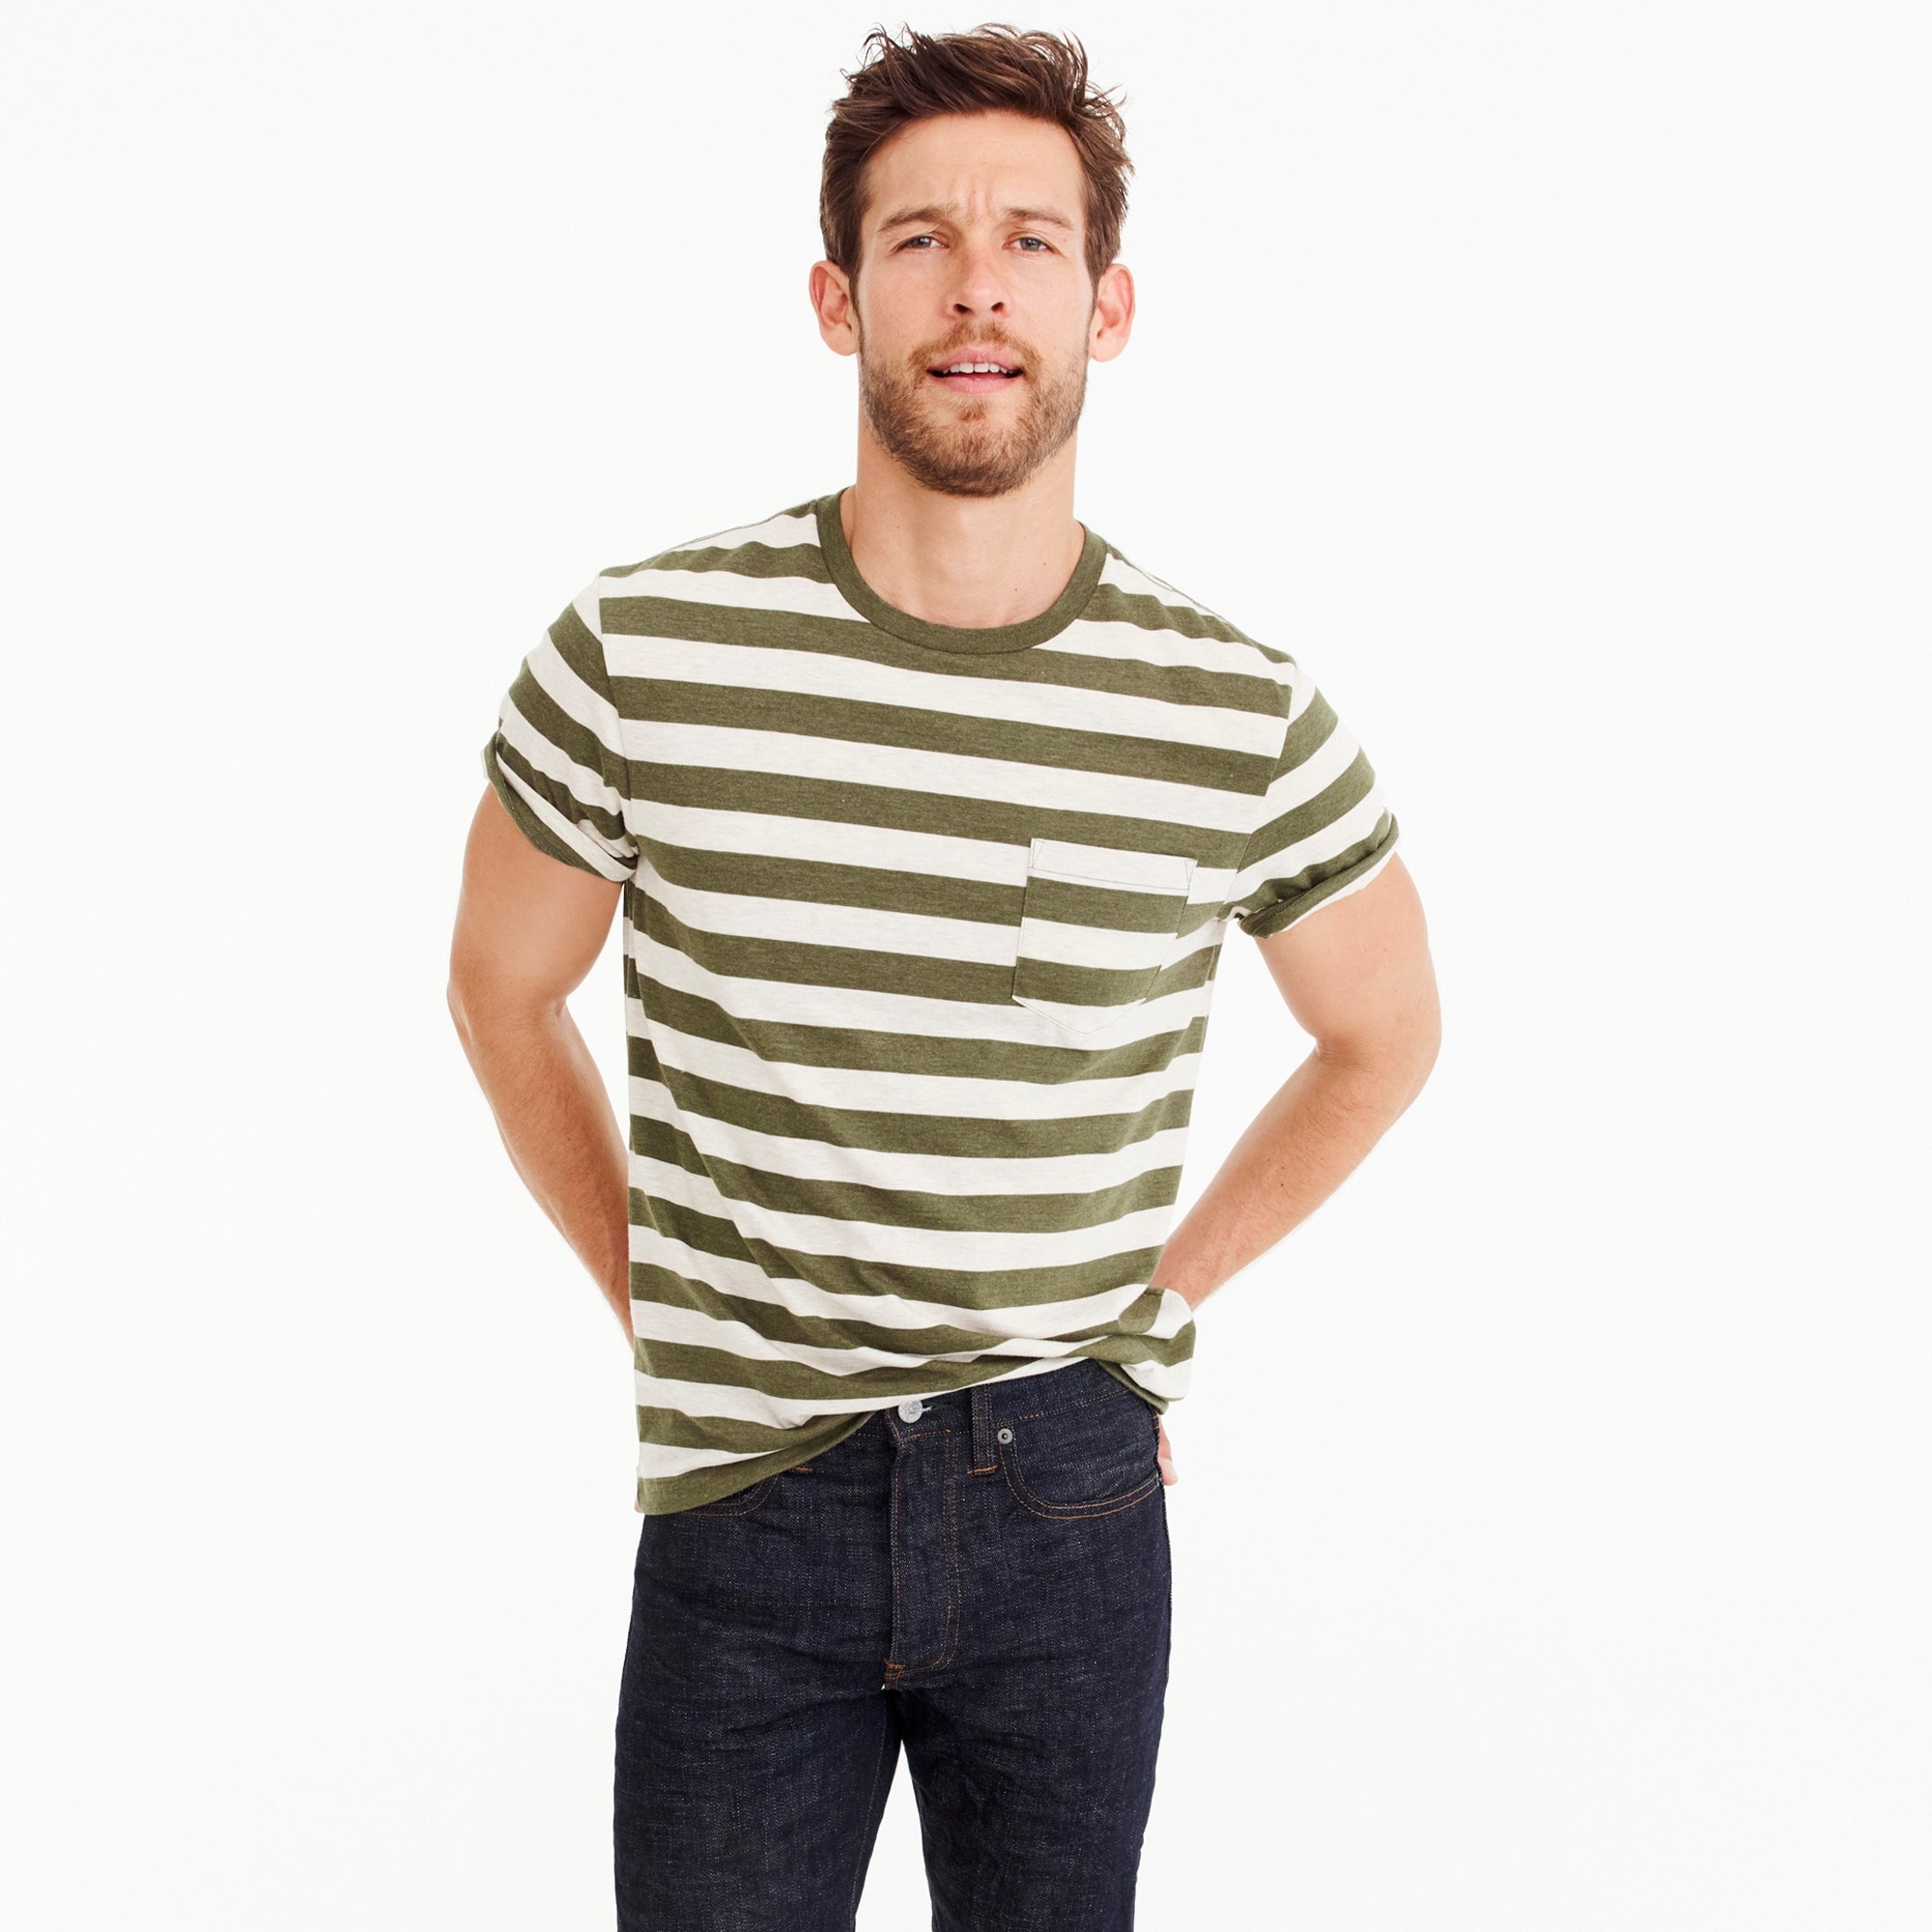 Image 2 for J.Crew Mercantile Broken-in T-shirt in Bedford stripe